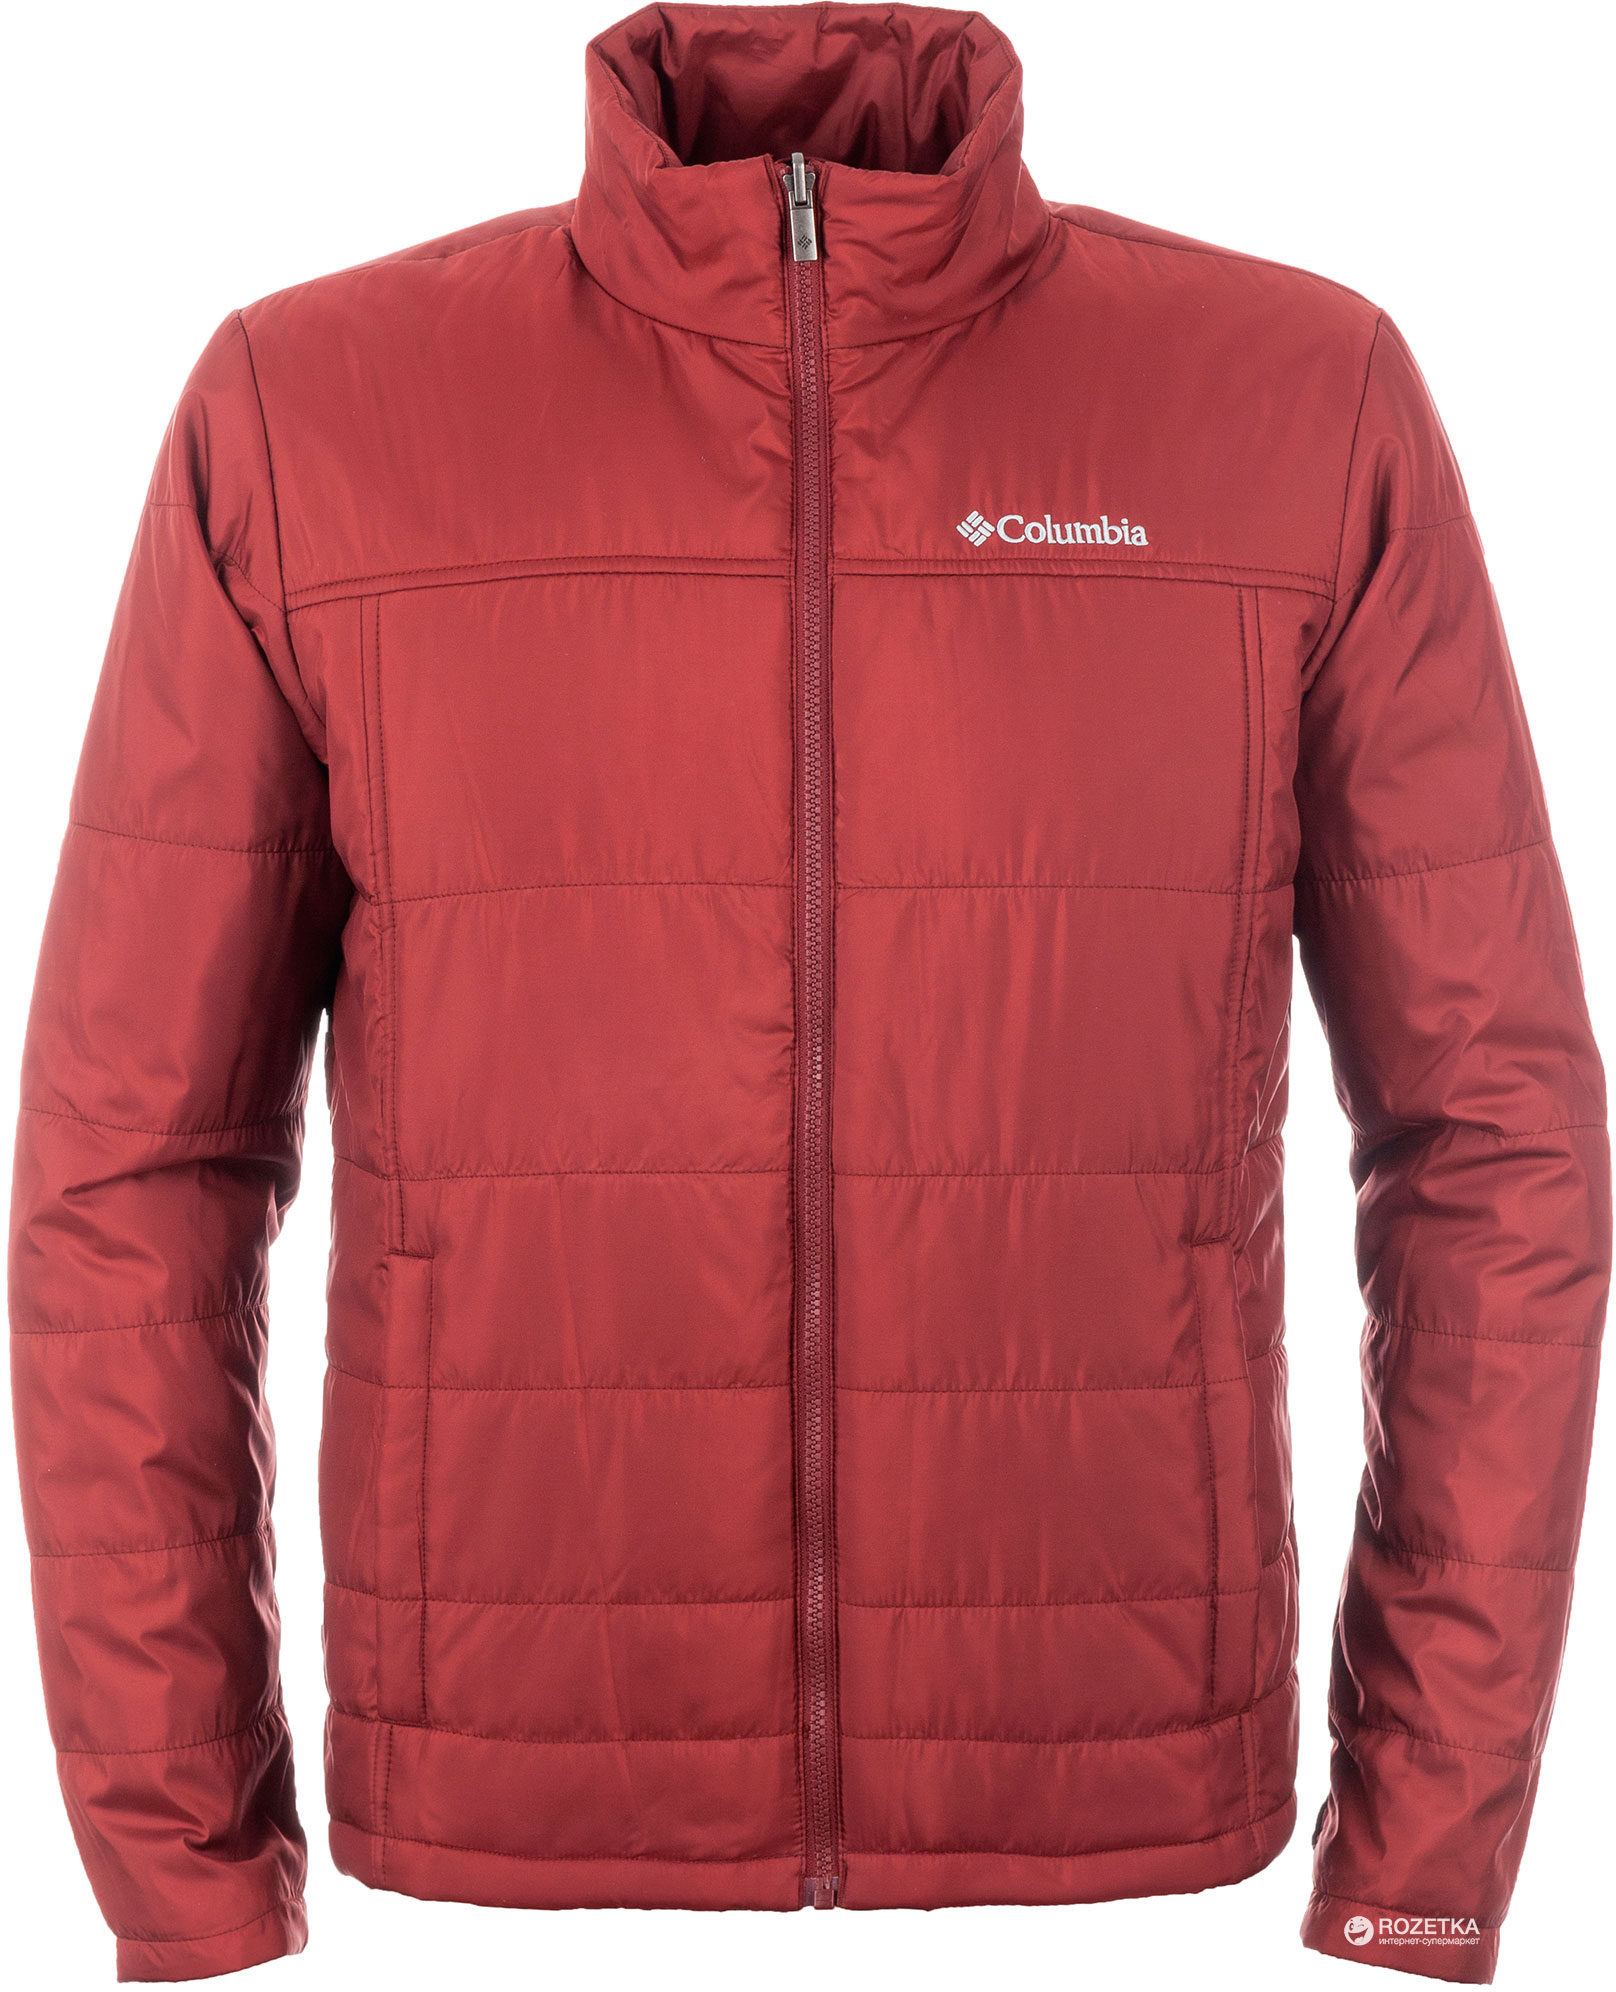 e46a30297632 Куртка Columbia Casual Interchange Jacket 3-in-1 Mens jacket 1680521-464 M